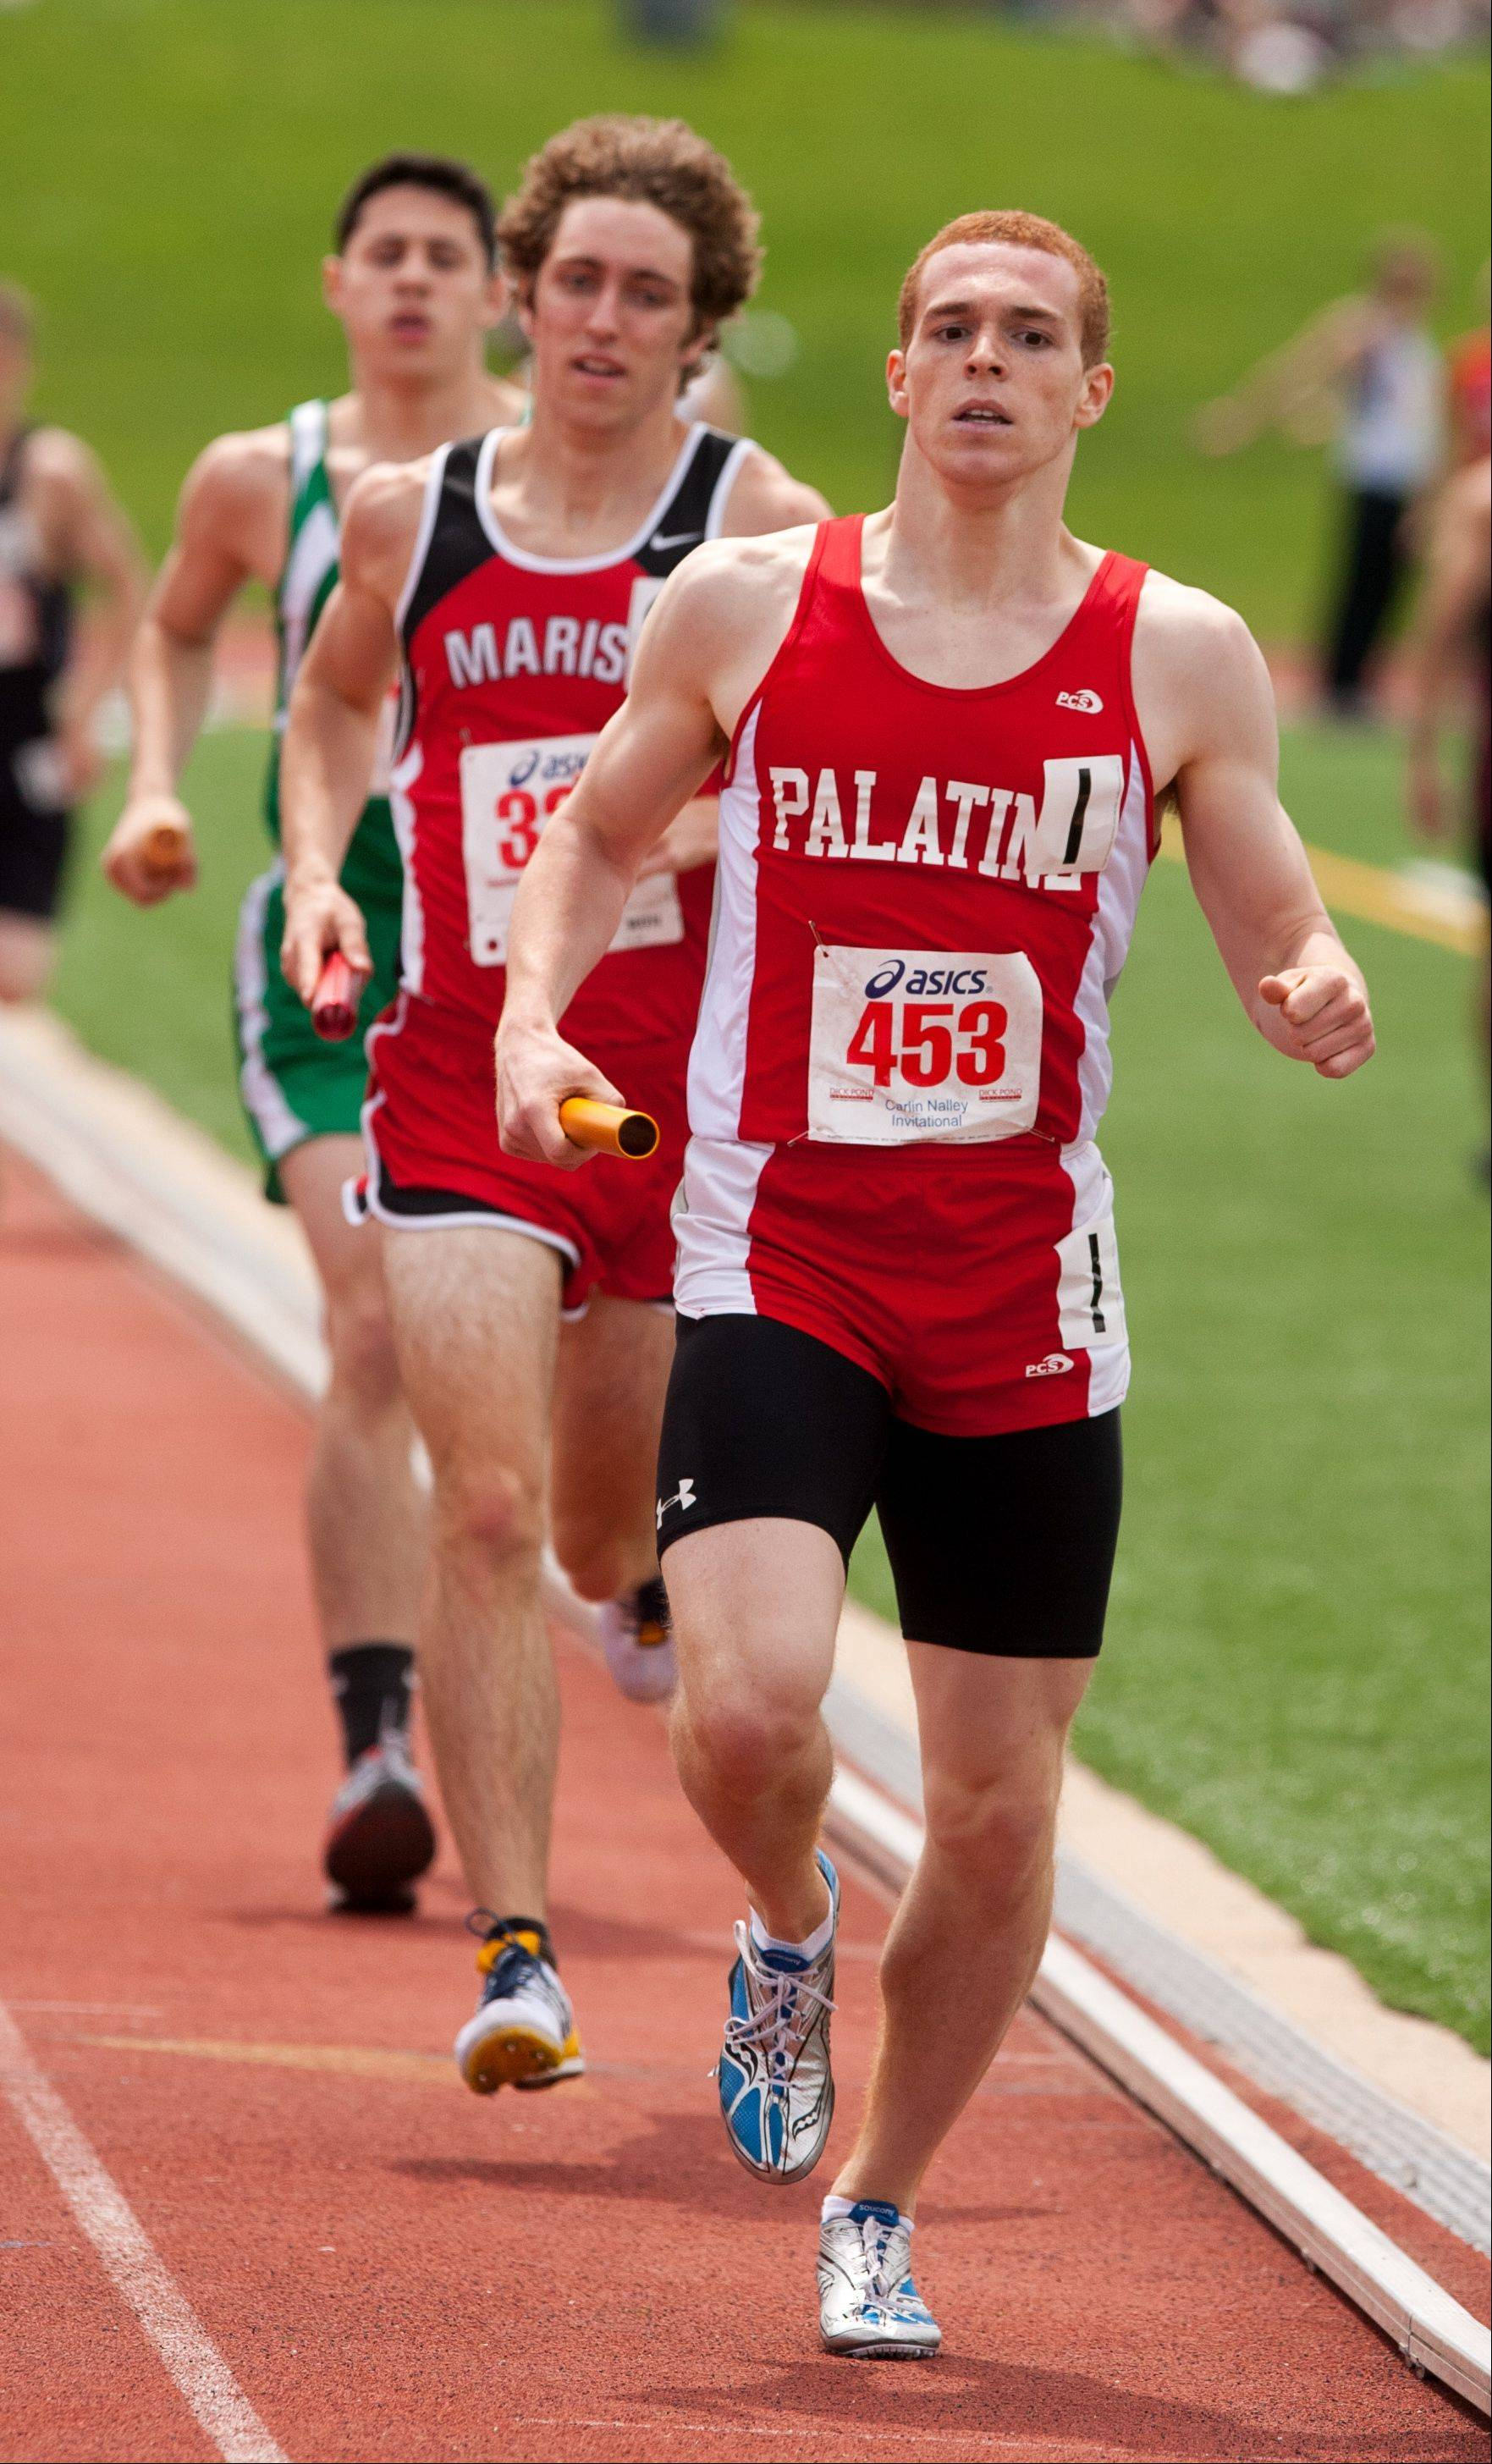 Palatine's Andrew Clingerman anchors a record breaking 4x800 meter relay win, during the 46th annual Carlin Nalley Boys´ Track Invitational at Benedictine University in Lisle. The Pirates ran a 7:49.99 time.